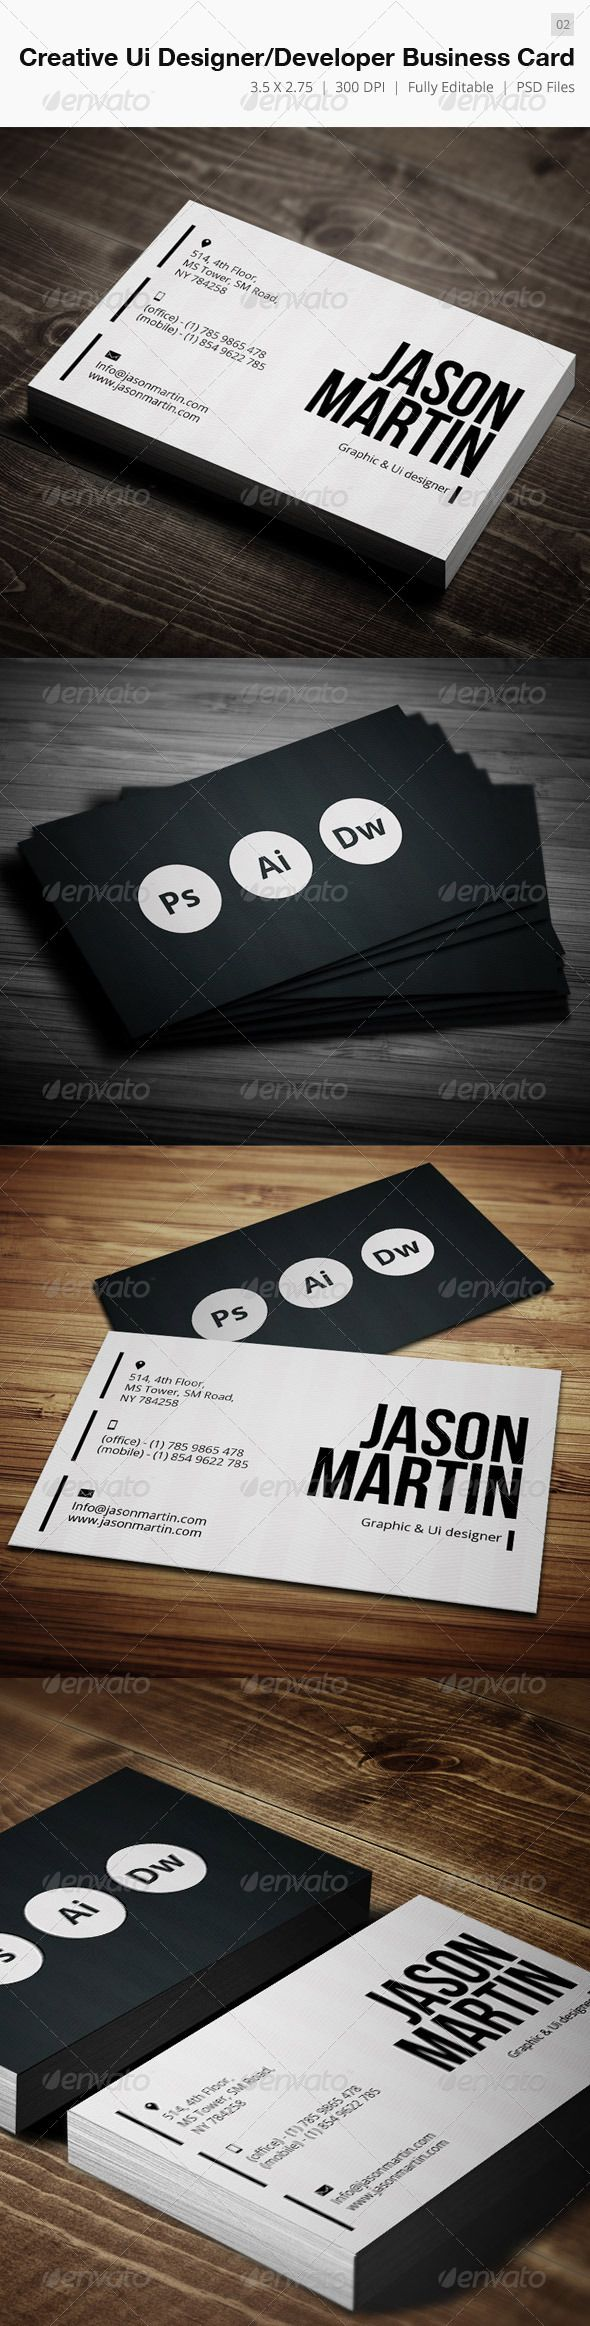 Creative Designer-Developer Business Card - 02